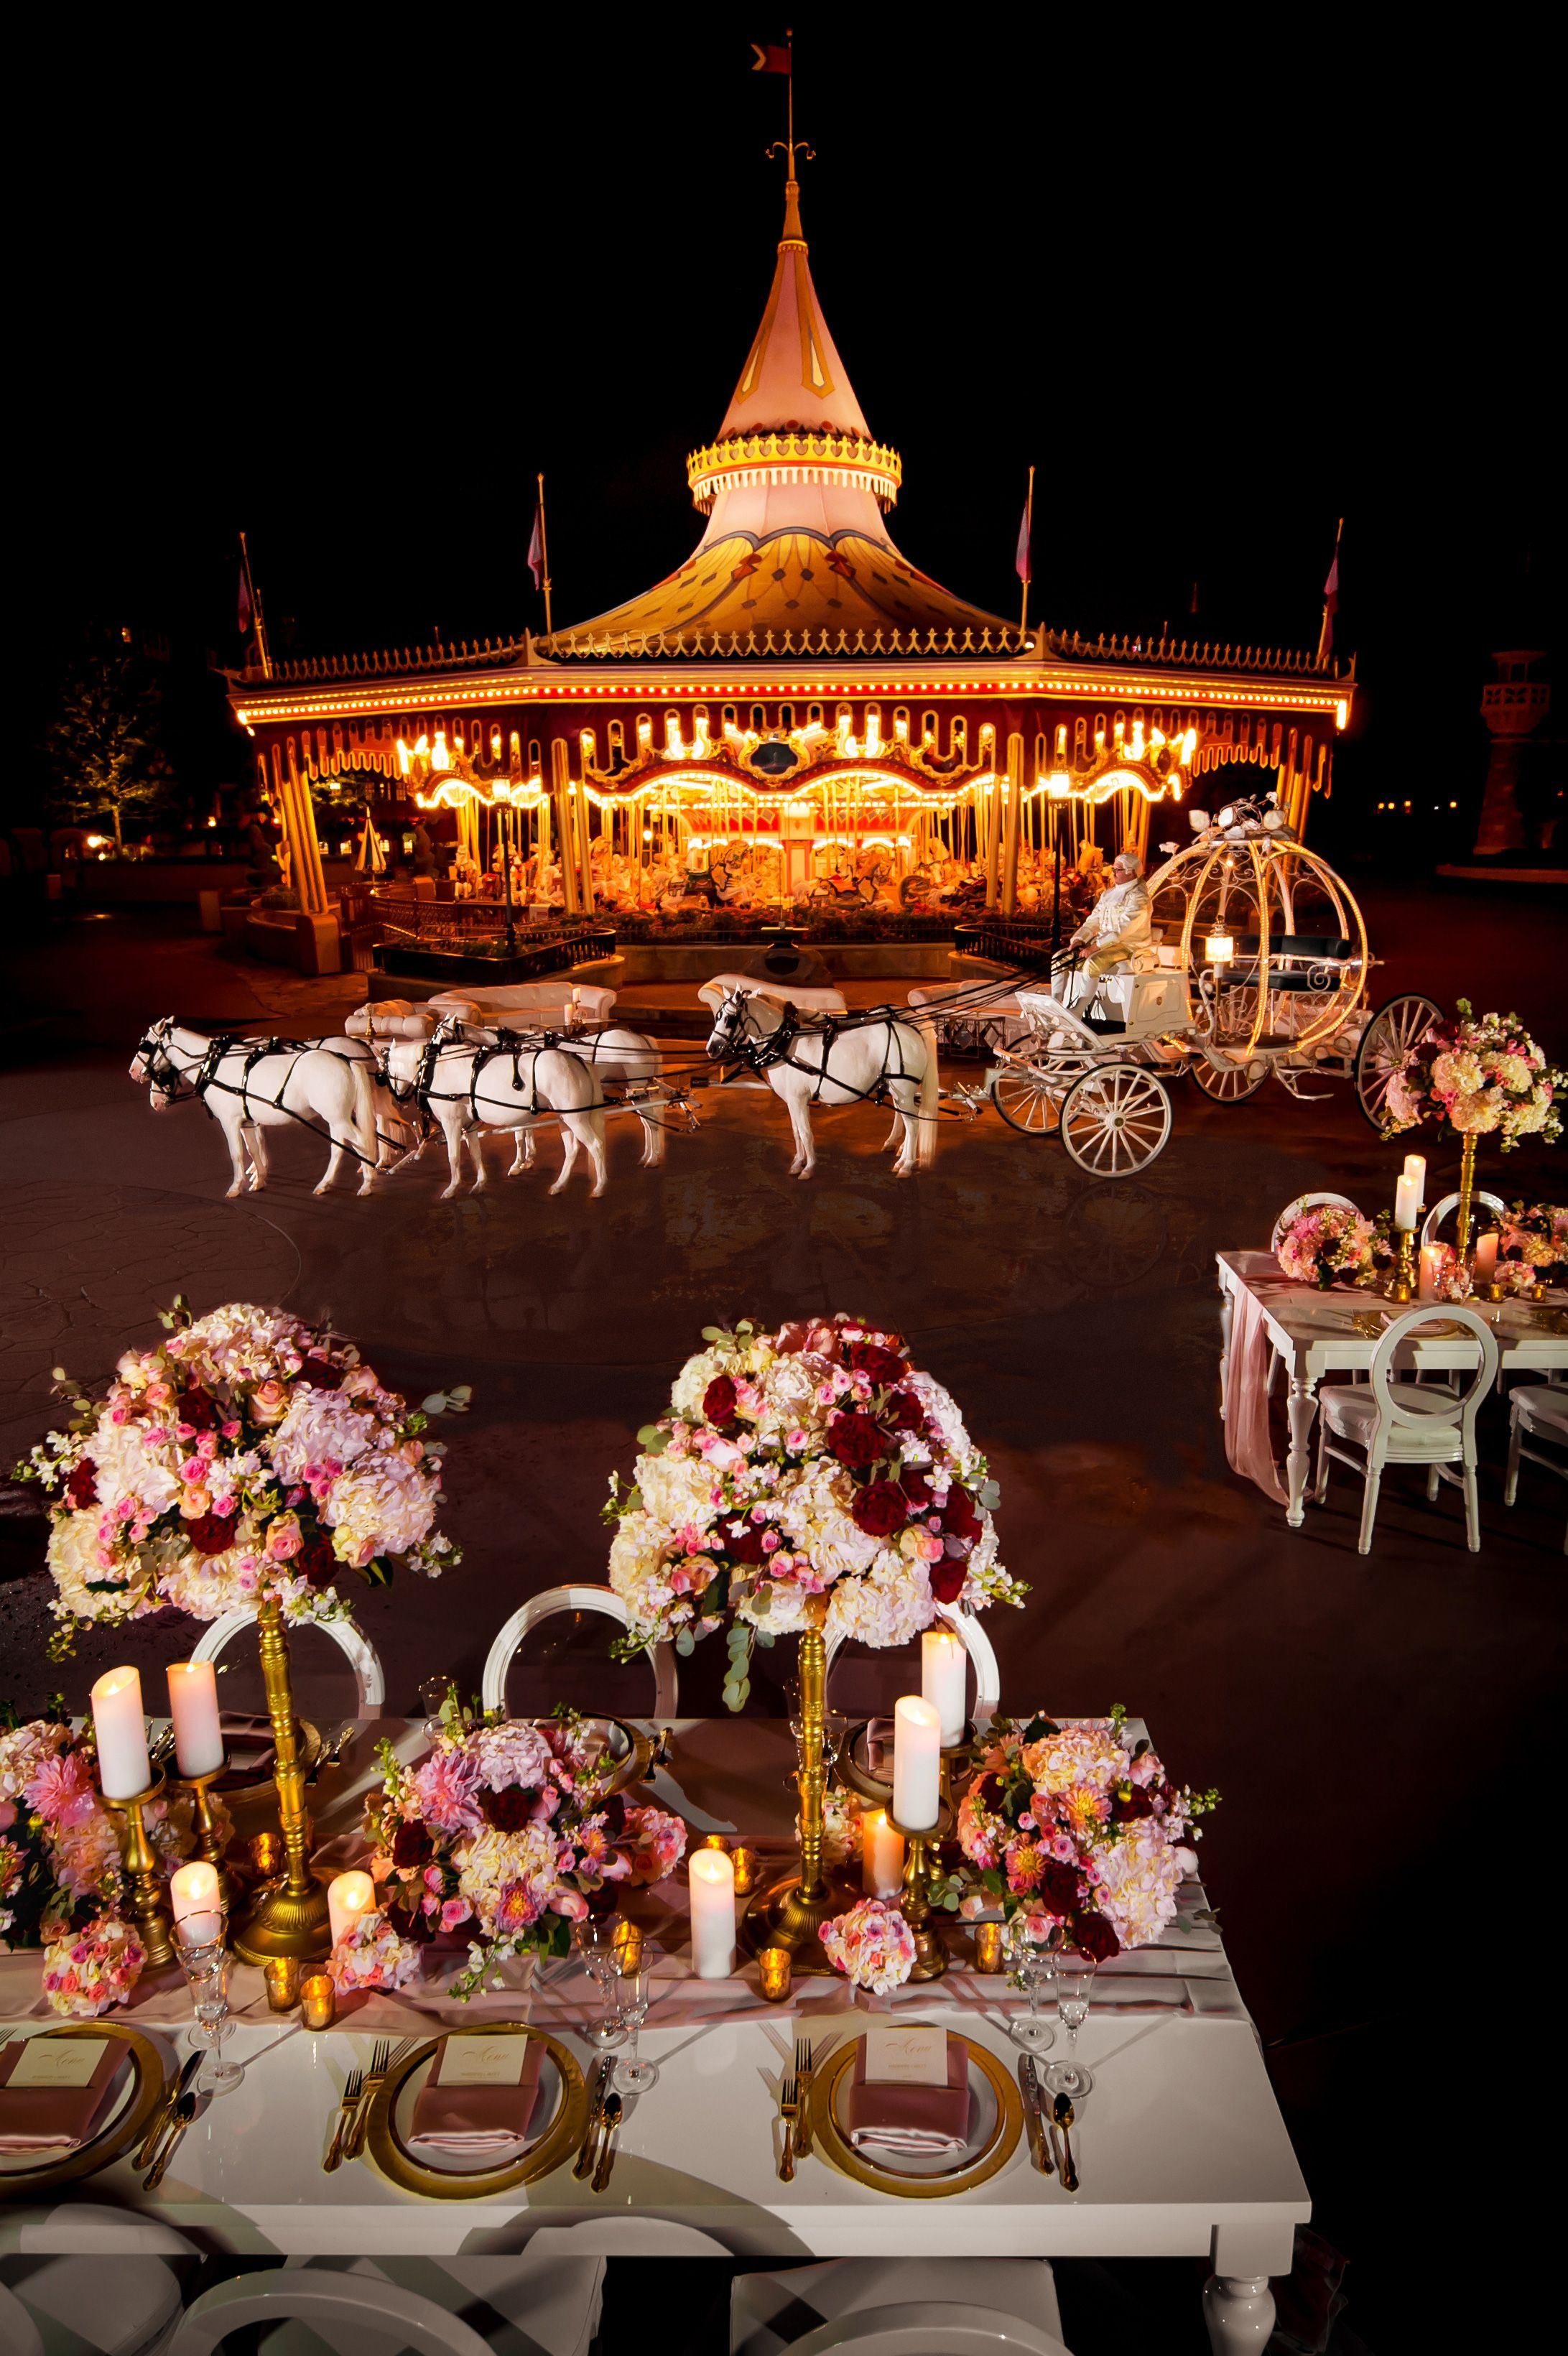 Disney nighttime wedding